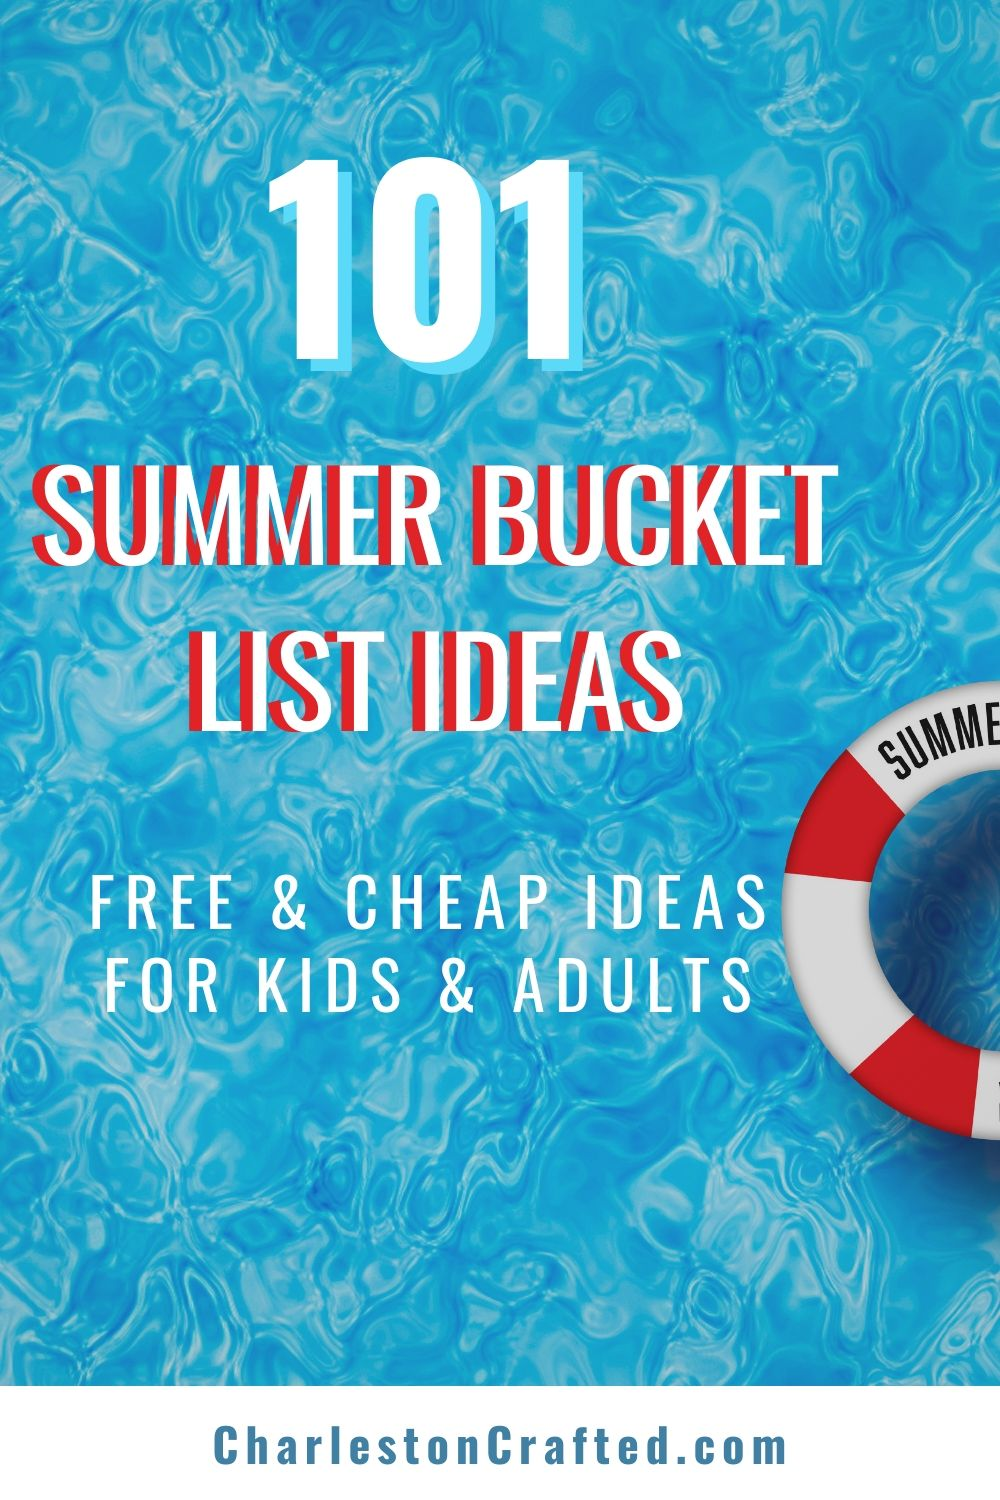 FREE printable summer bucket list ideas